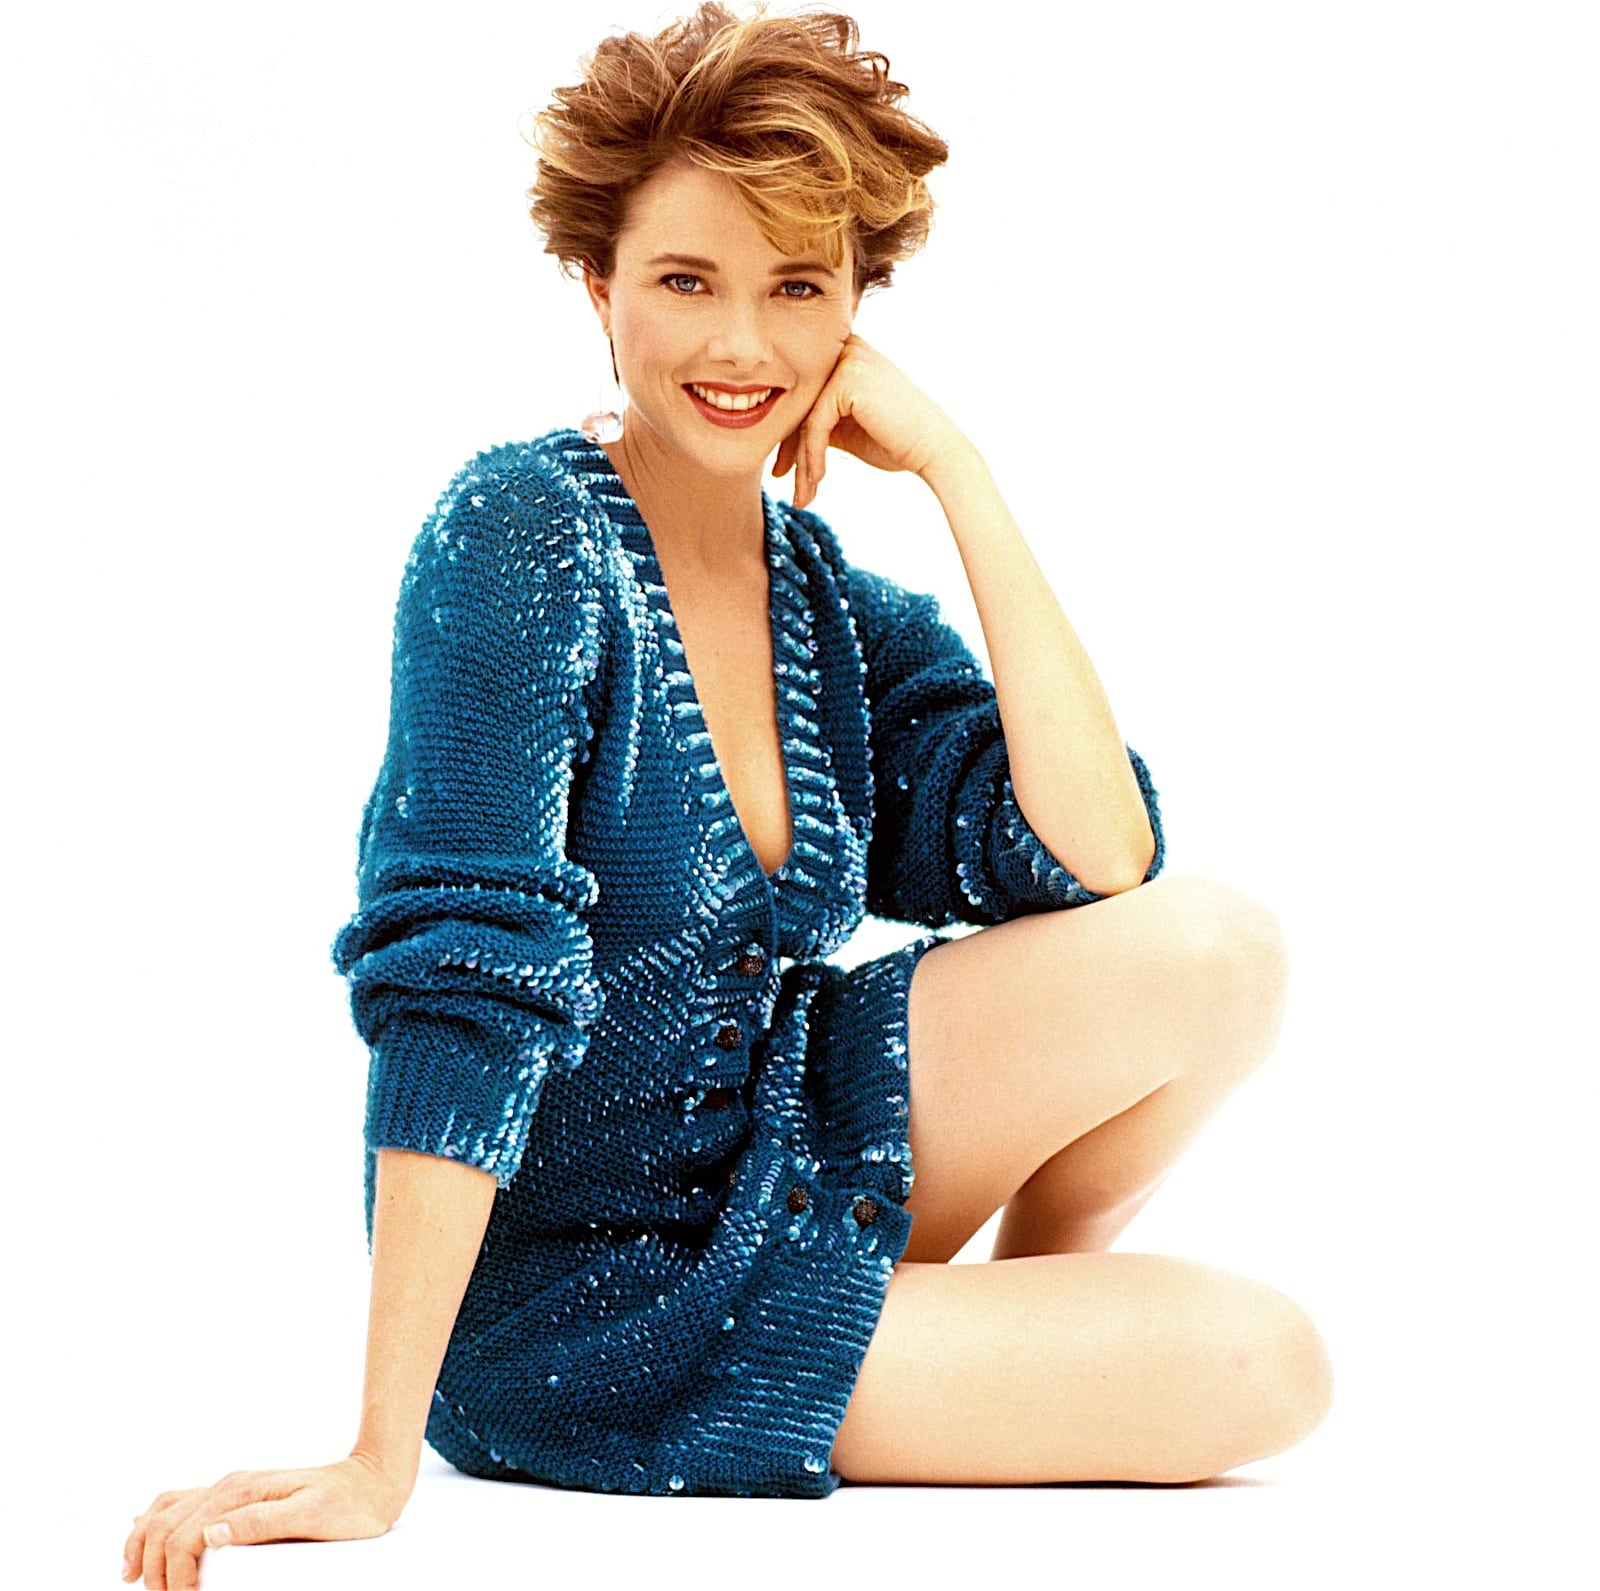 Annette Bening Wallpapers hd